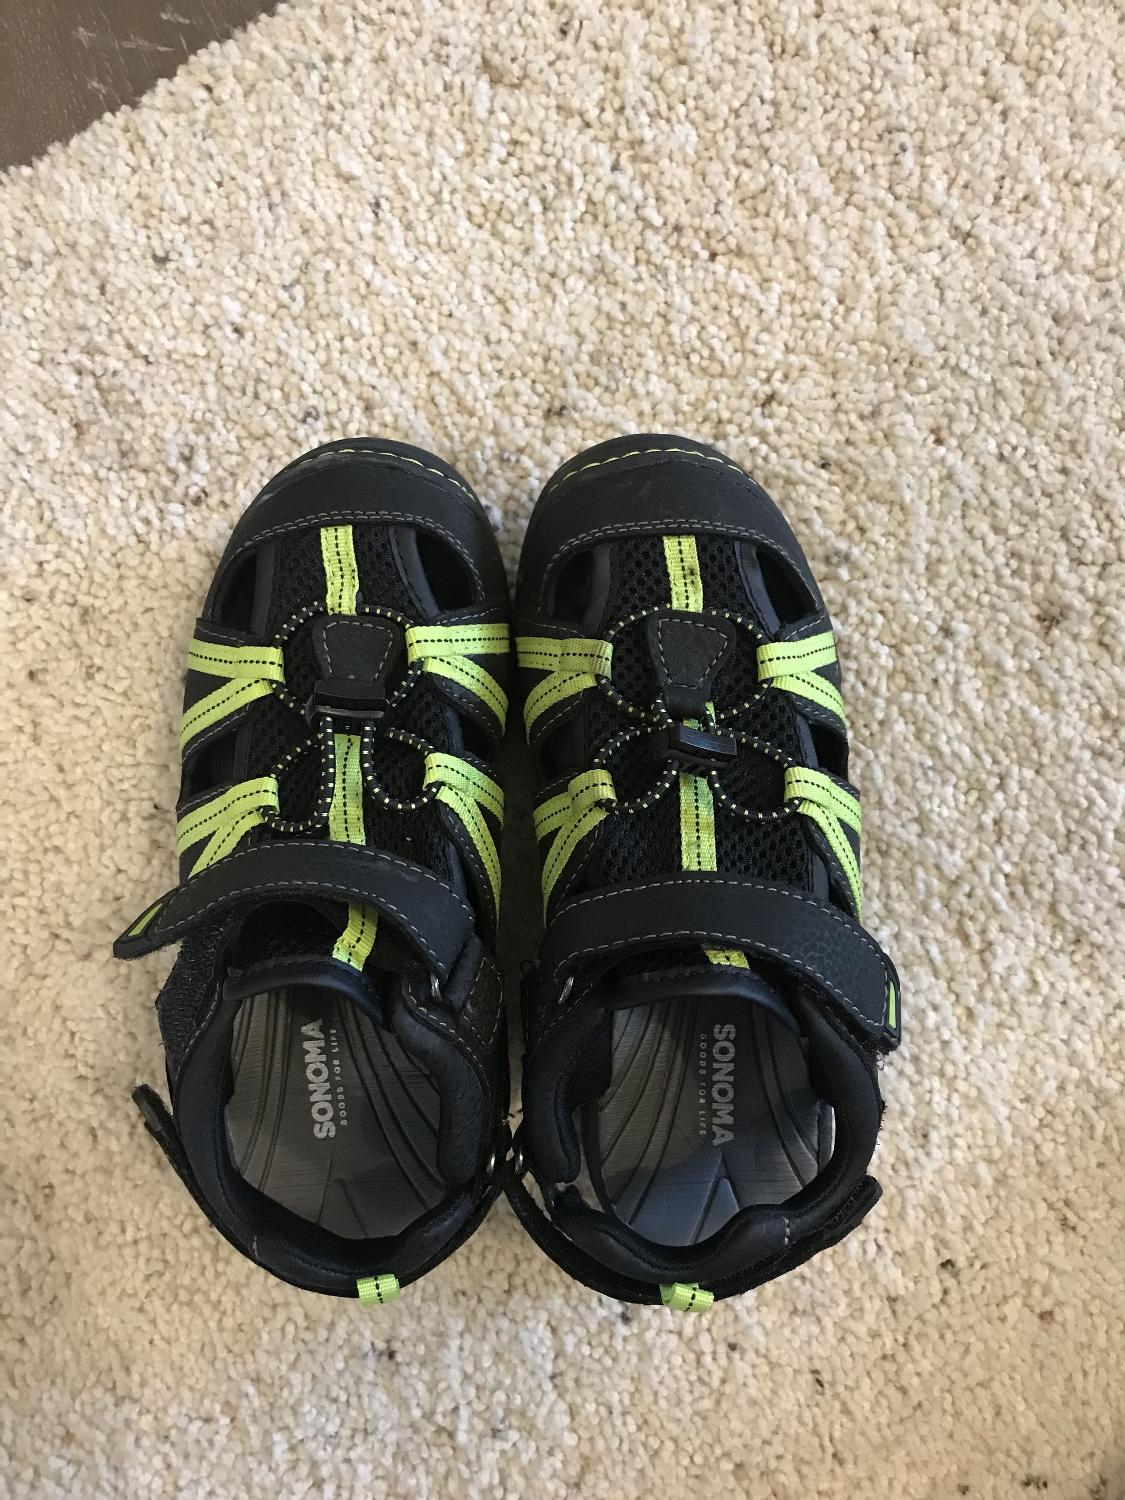 91bb981e0b0c9 Best Sonoma Boys Youth Sport Sandals. Goods For Life. Worn One Time. Size 1  Medium. Great Condition. Porch Pick Up Tremont for sale in Morton